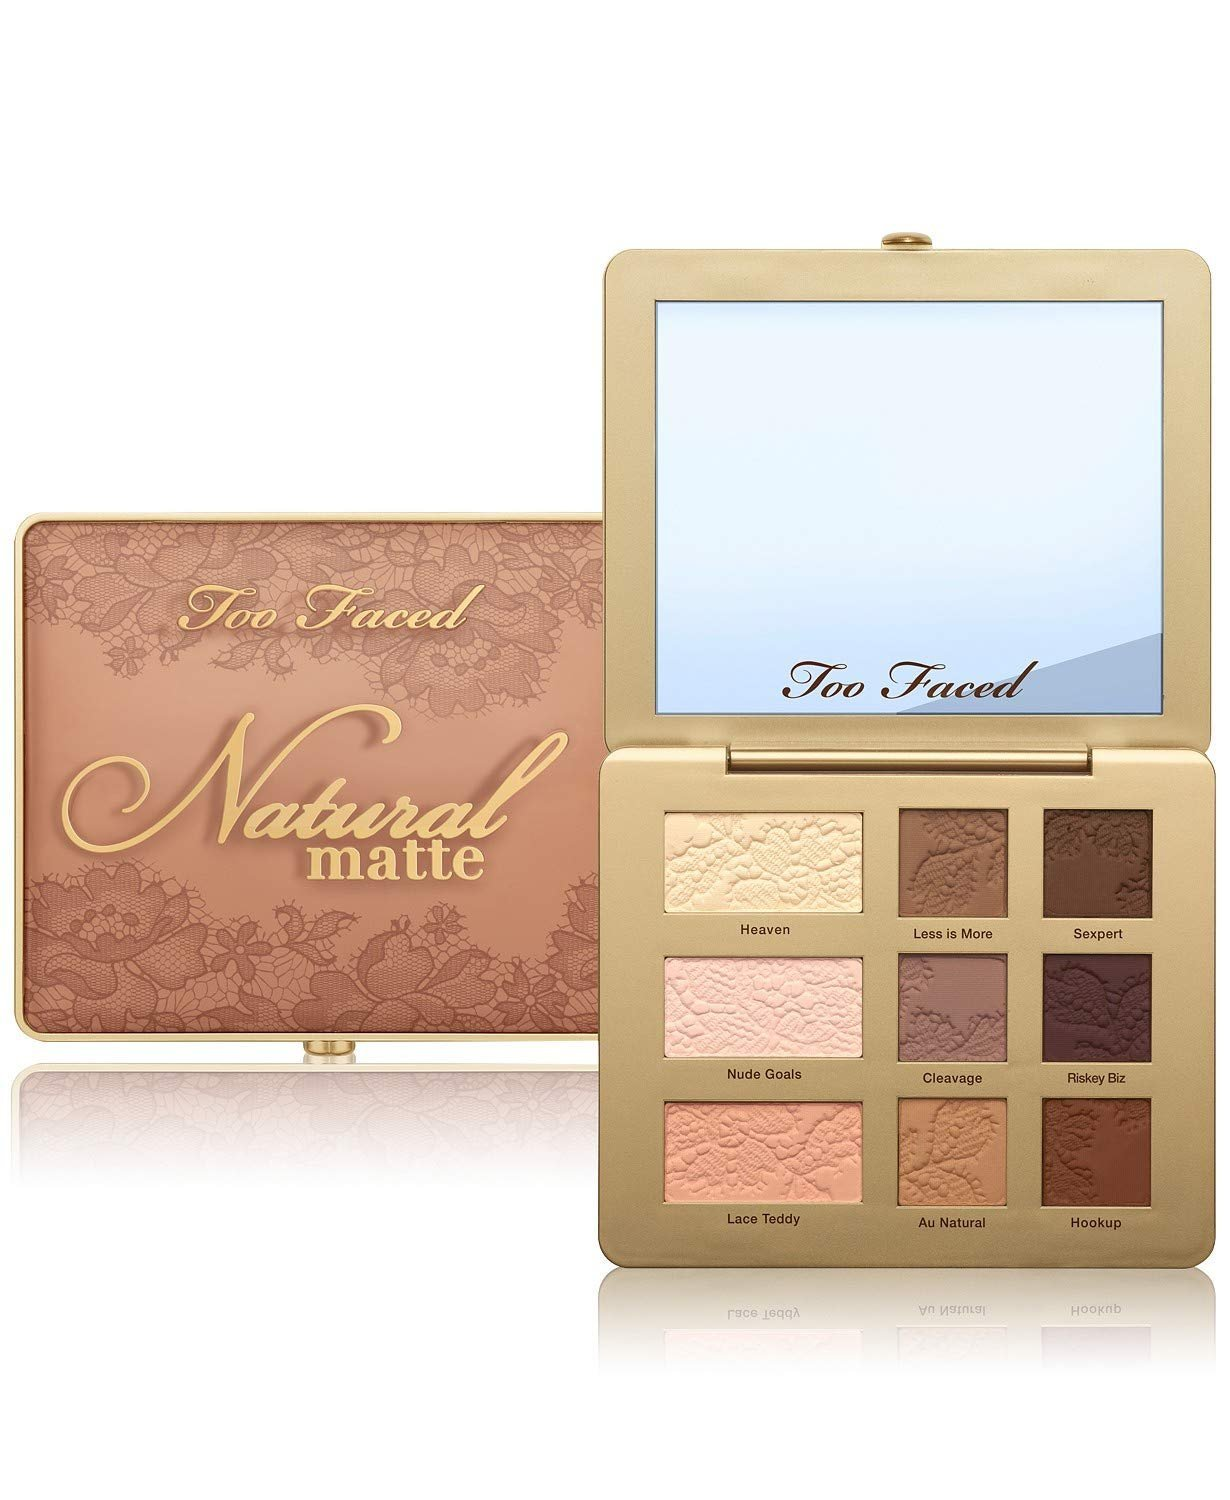 Primary image for Too Faced Natural Matte Eye Shadow Palette